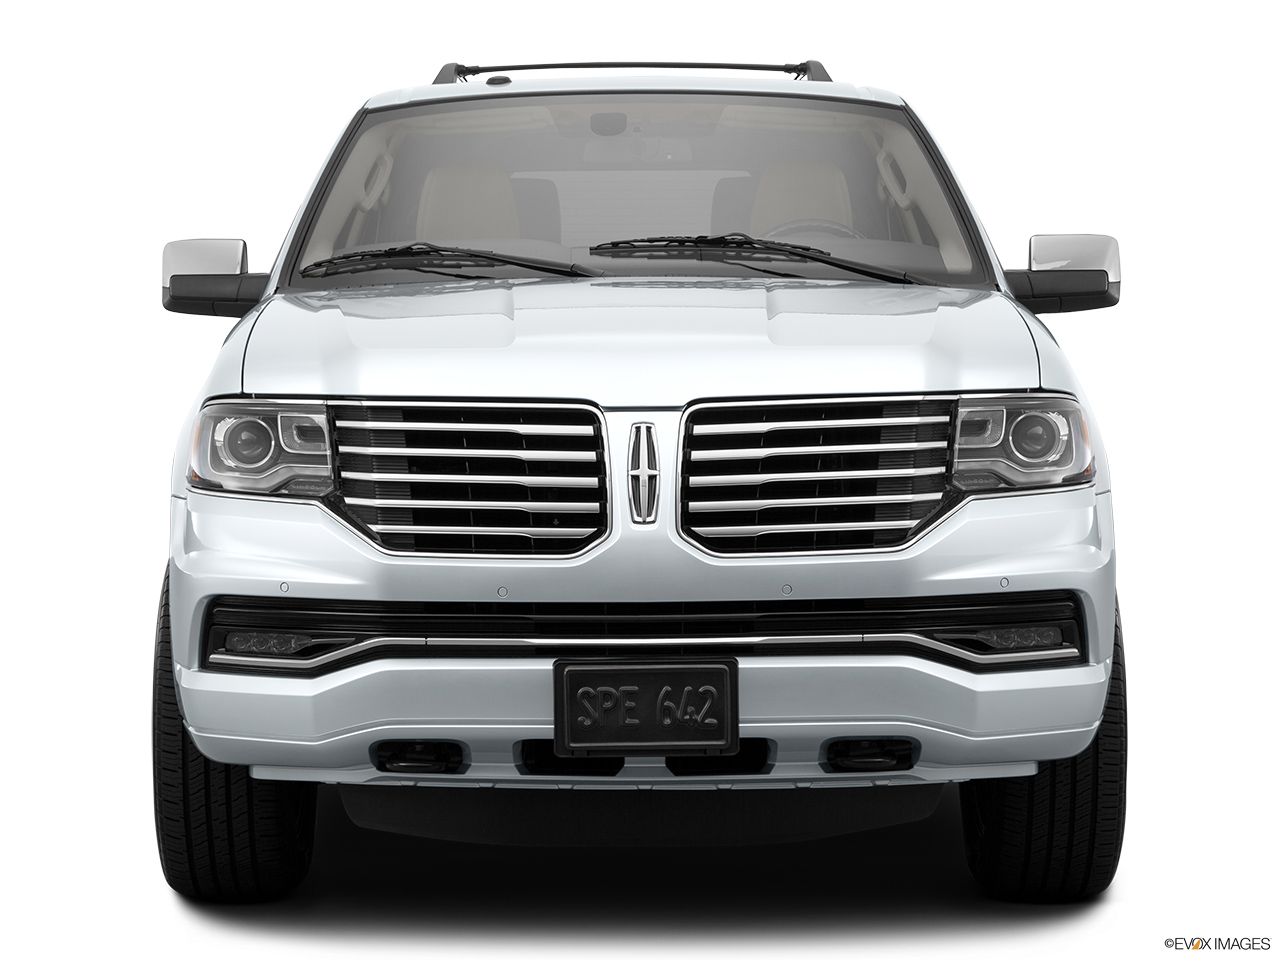 2015 Lincoln Navigator Base Low/wide front.